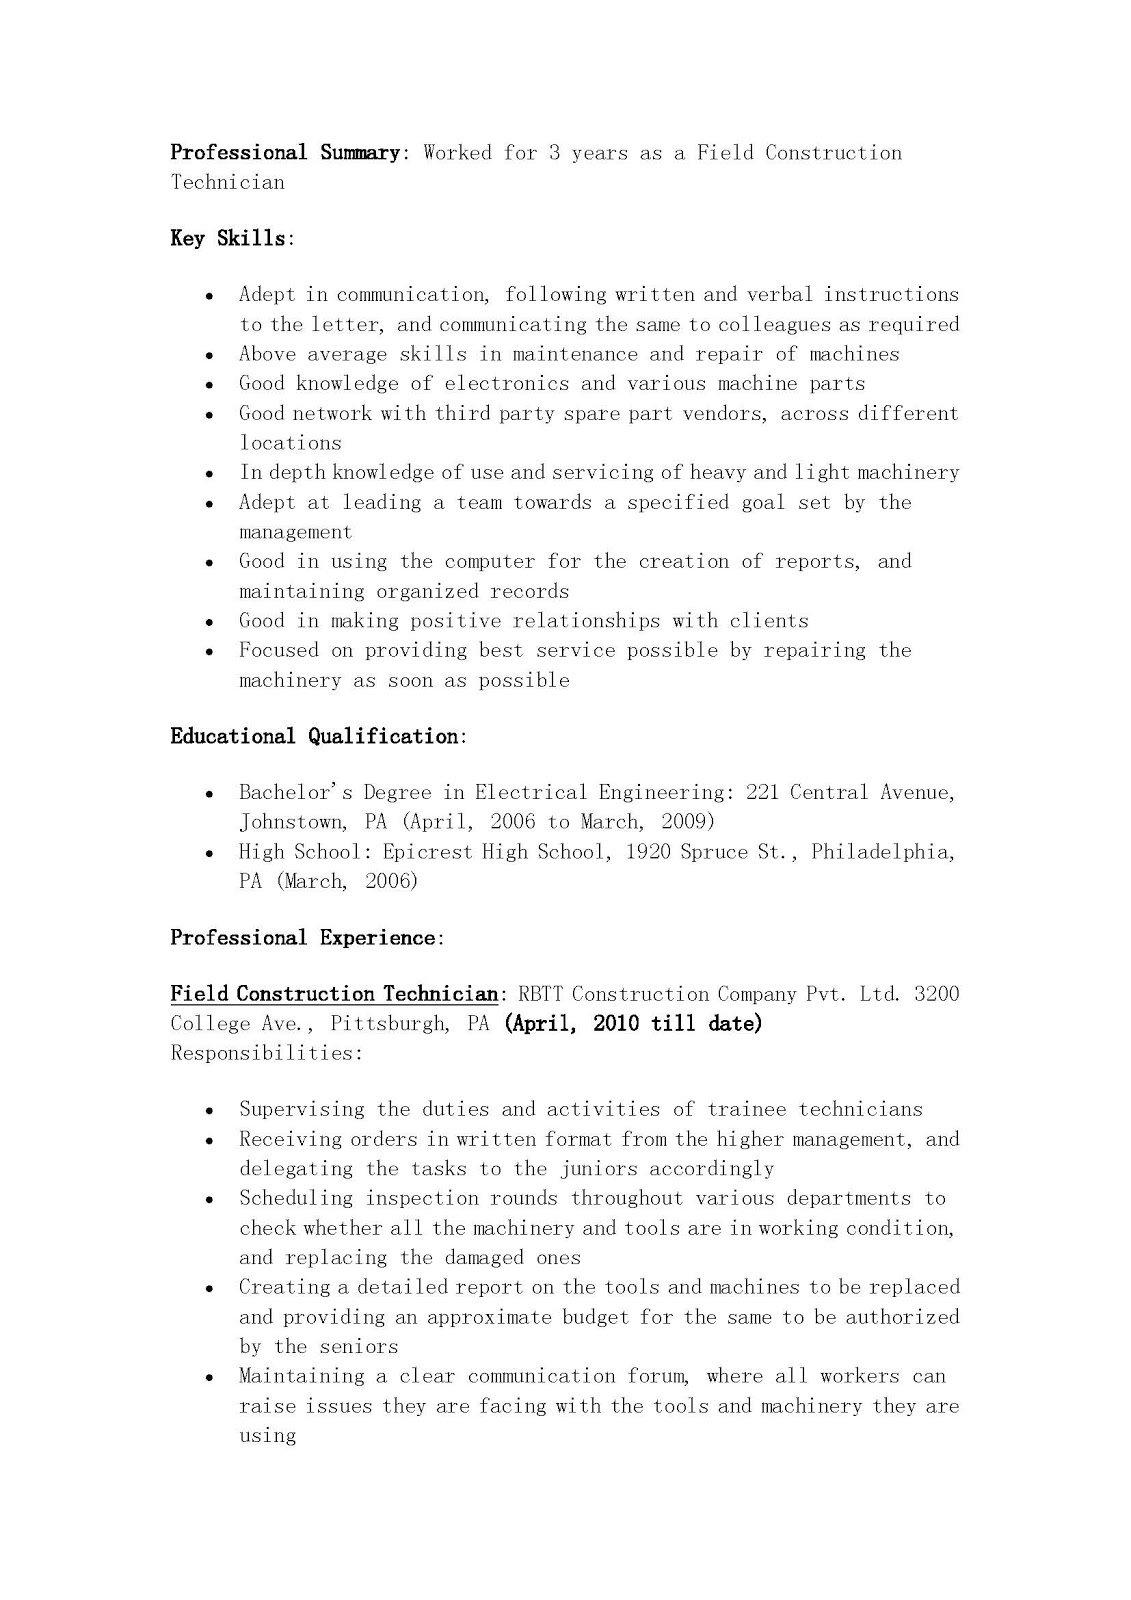 resume samples  field construction technician resume